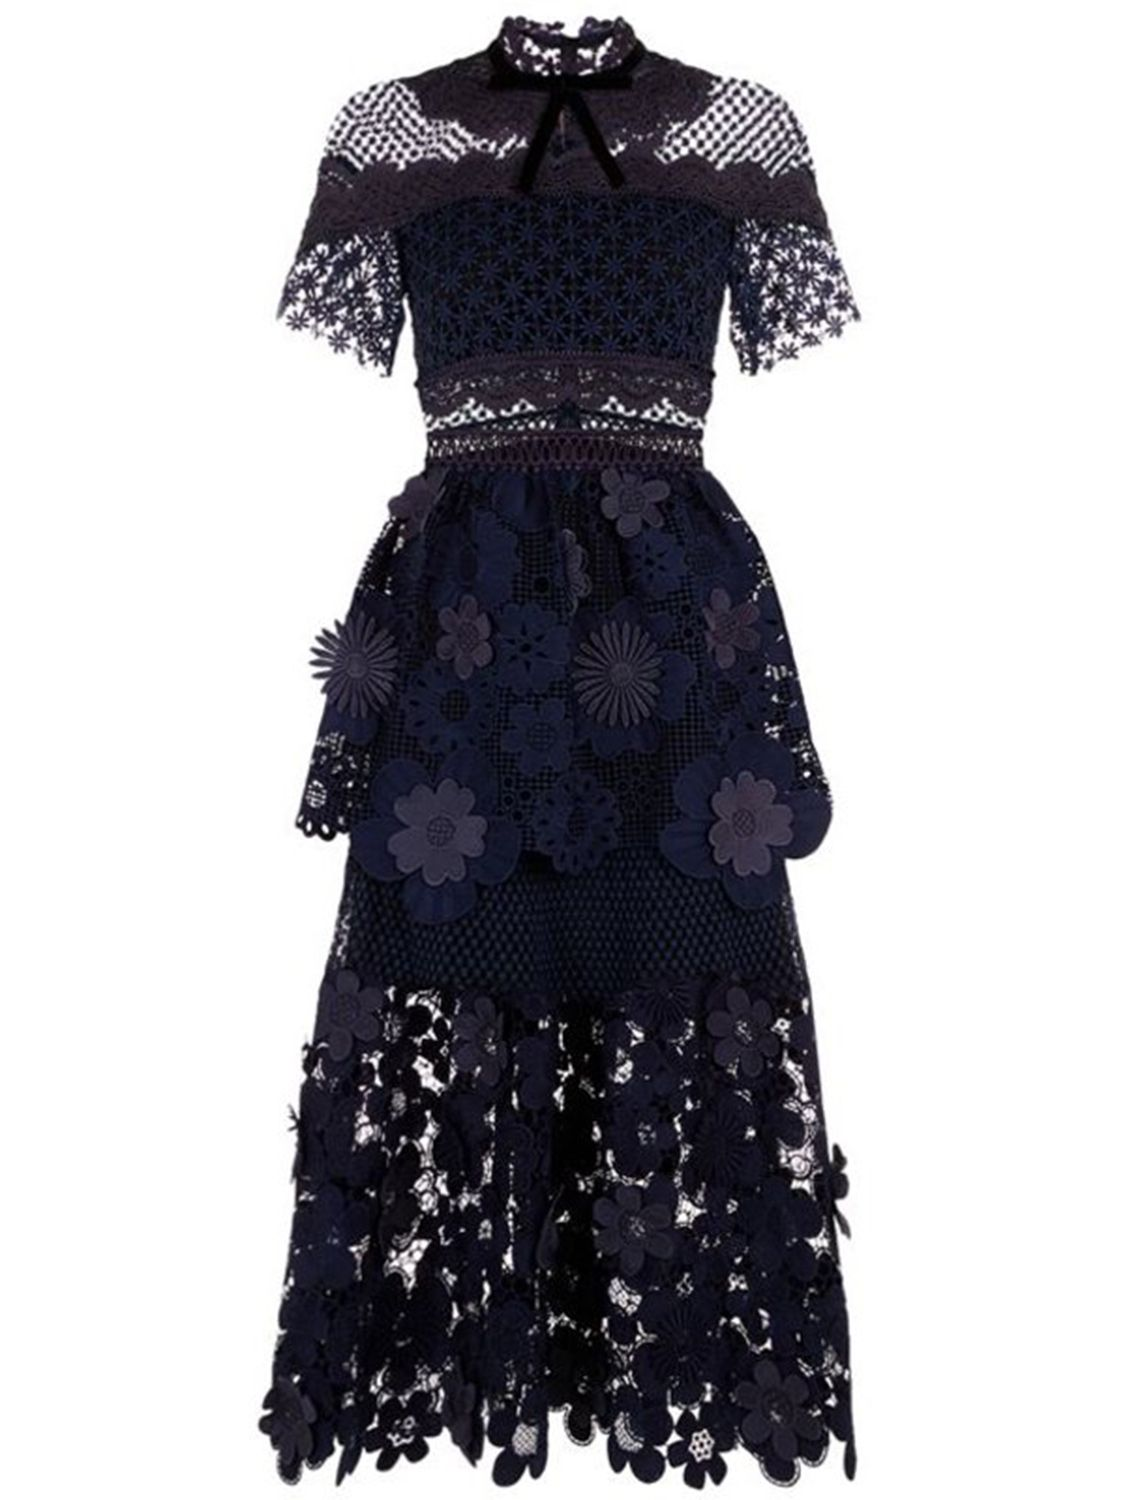 86aa3815a3a1 Navy Blue Mesh Panel 3D Floral Lace Double Layer Midi Dress   CHOIES ...